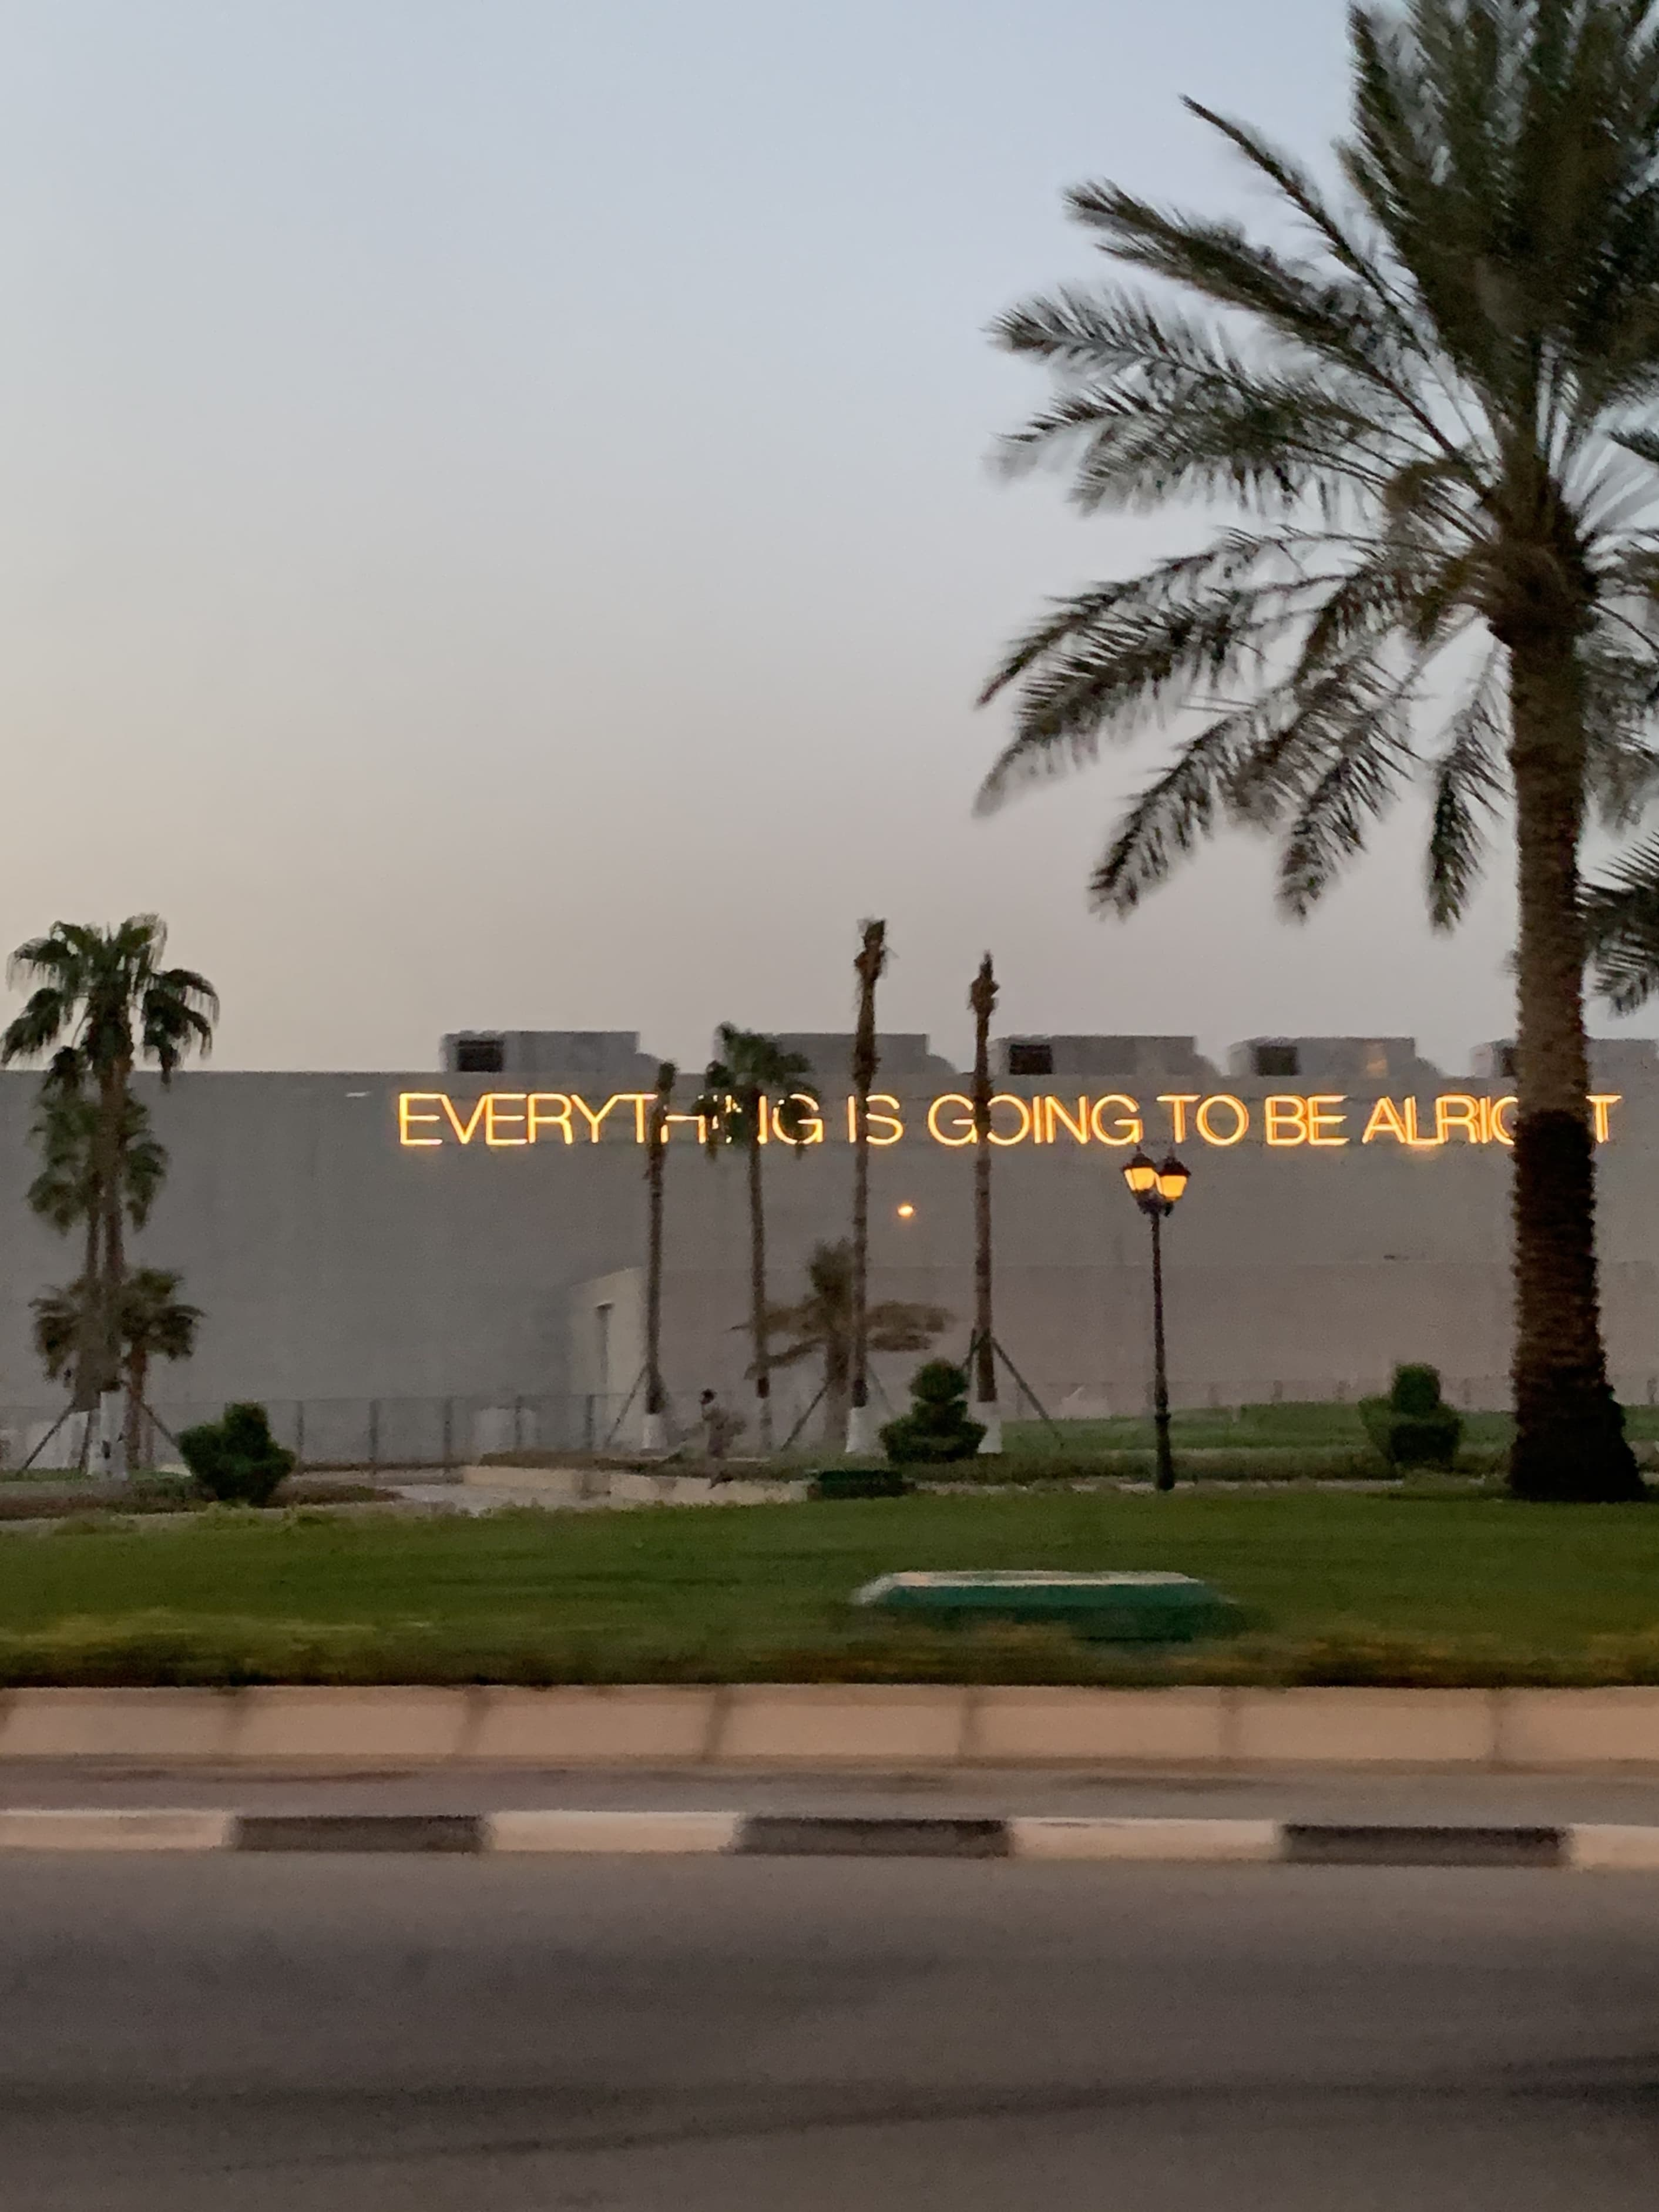 'EVERYTHING IS GOING TO BE ALRIGHT' LED installation by British artist Martin Creed.